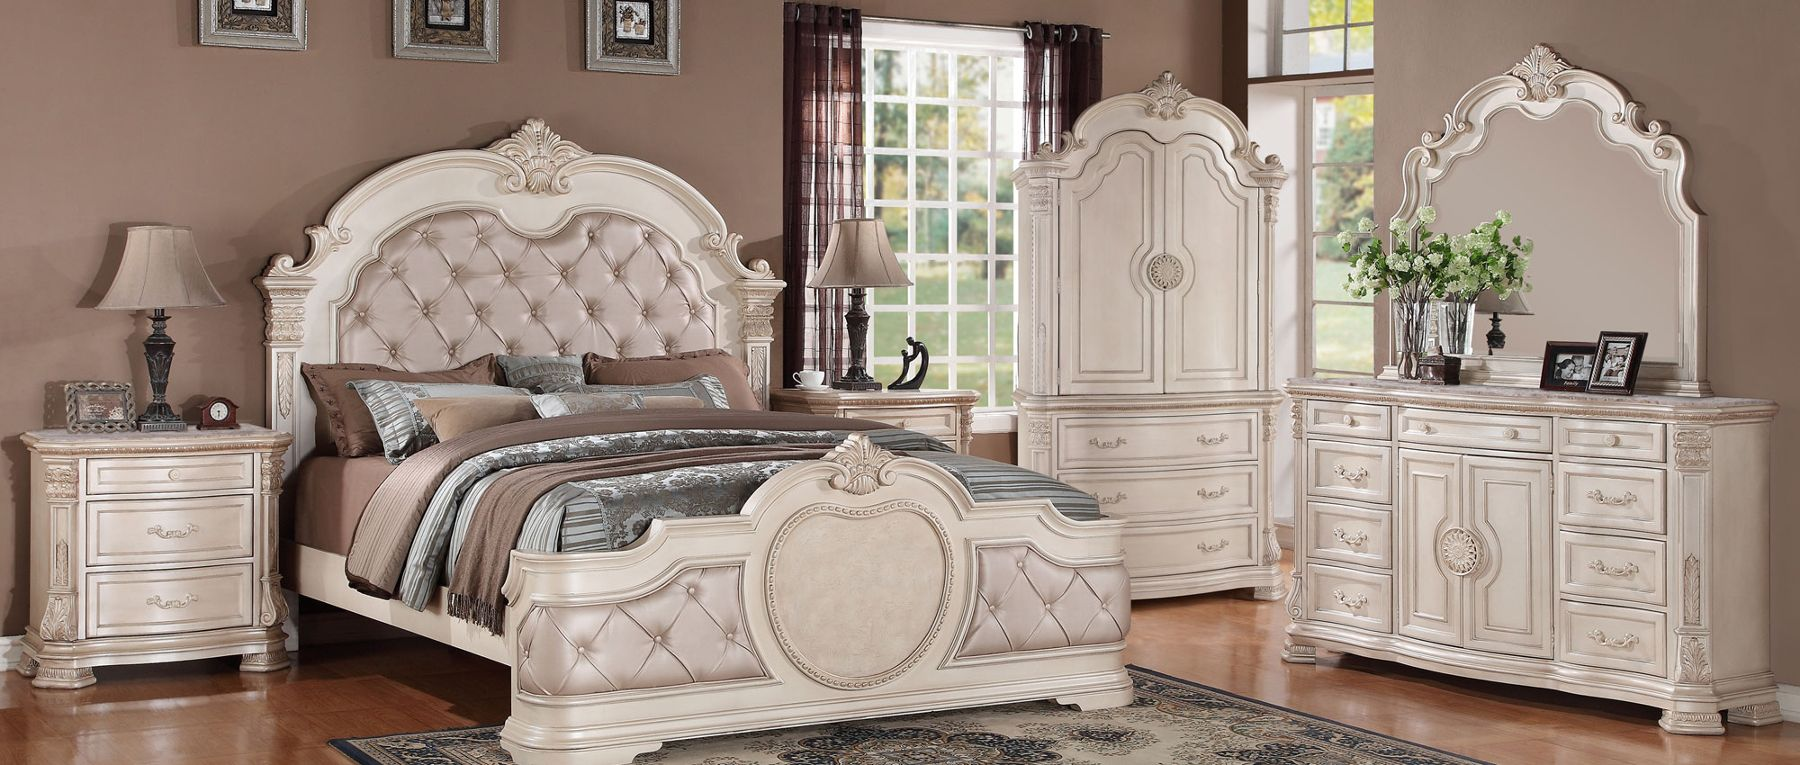 Ordinaire Infinity Bedroom Traditional Set In White